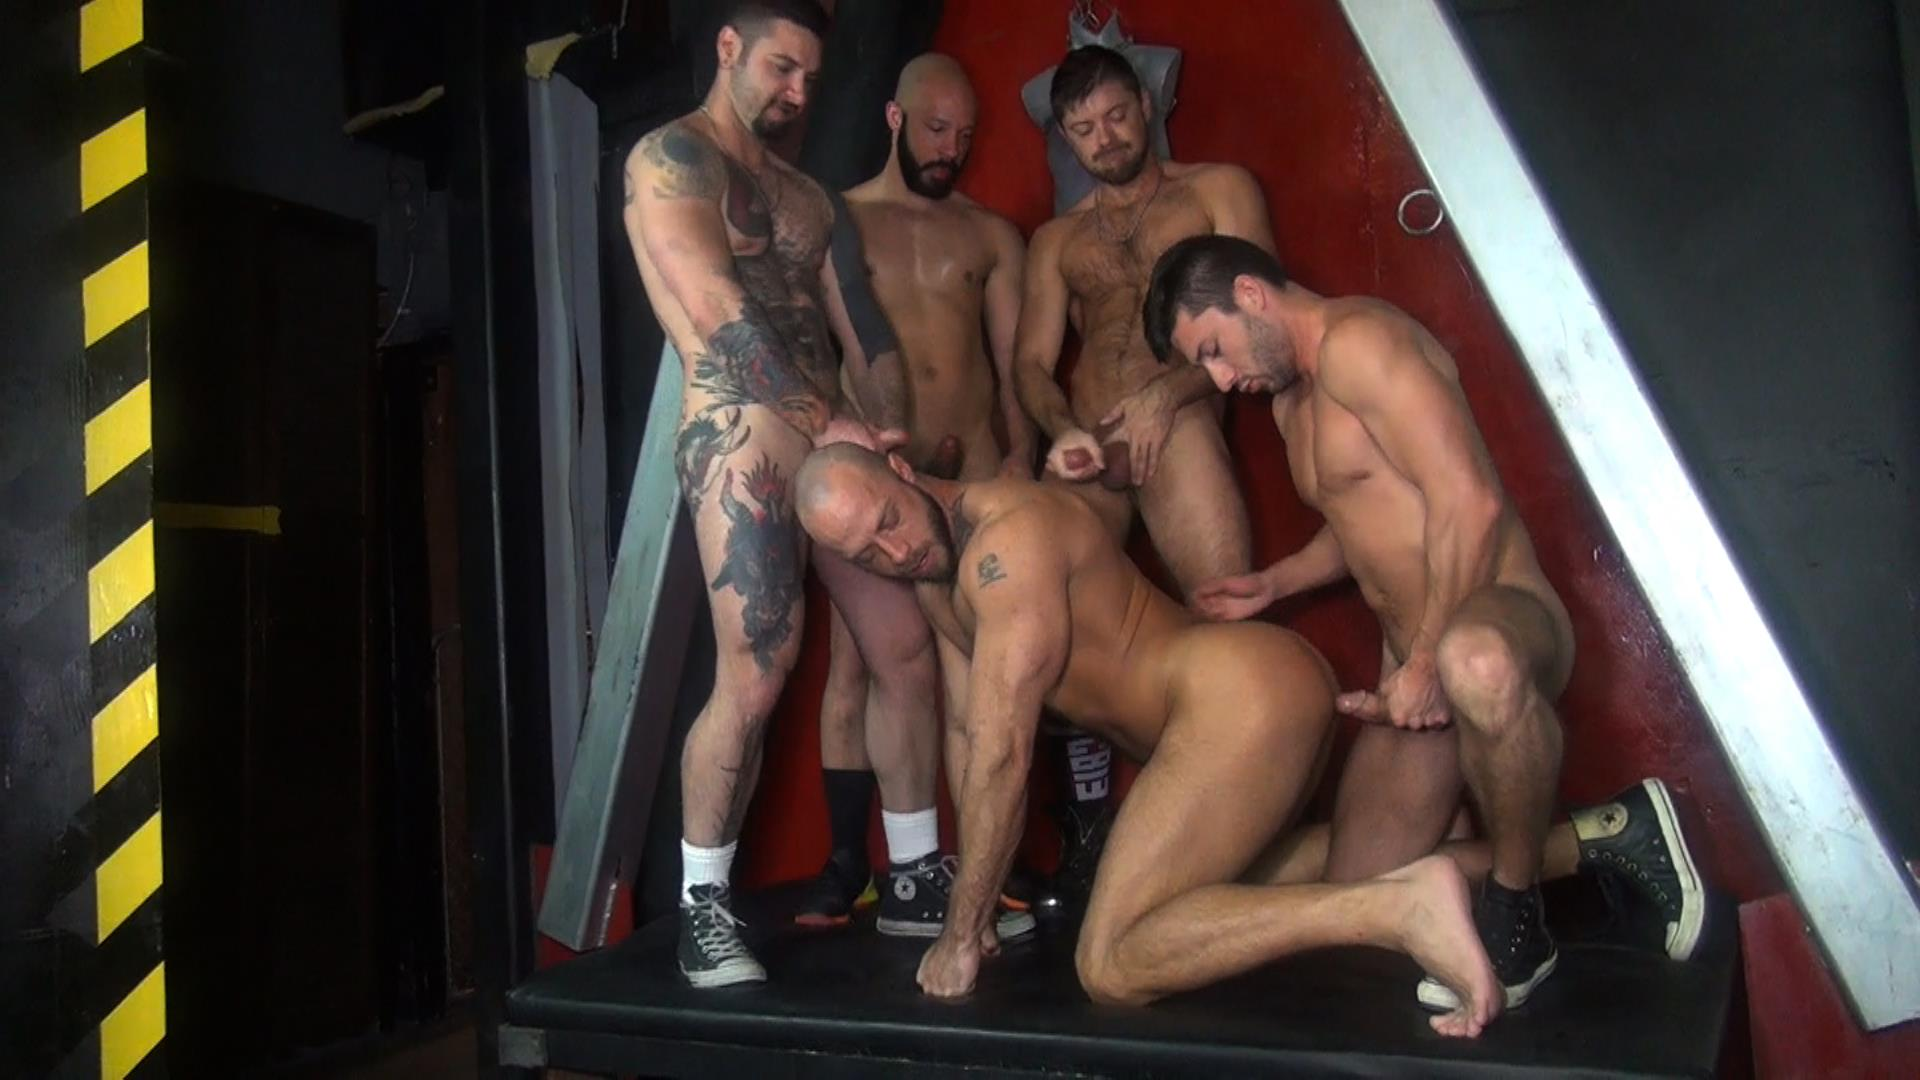 Raw-Fuck-Club-Dylan-Strokes-and-Scott-DeMarco-and-Jack-Andy-and-Jessie-Colter-and-Teddy-Bryce-Bareback-Sex-Video-07 Jessie Colter's First Bareback Gangbang At A Sleazy Bathhouse